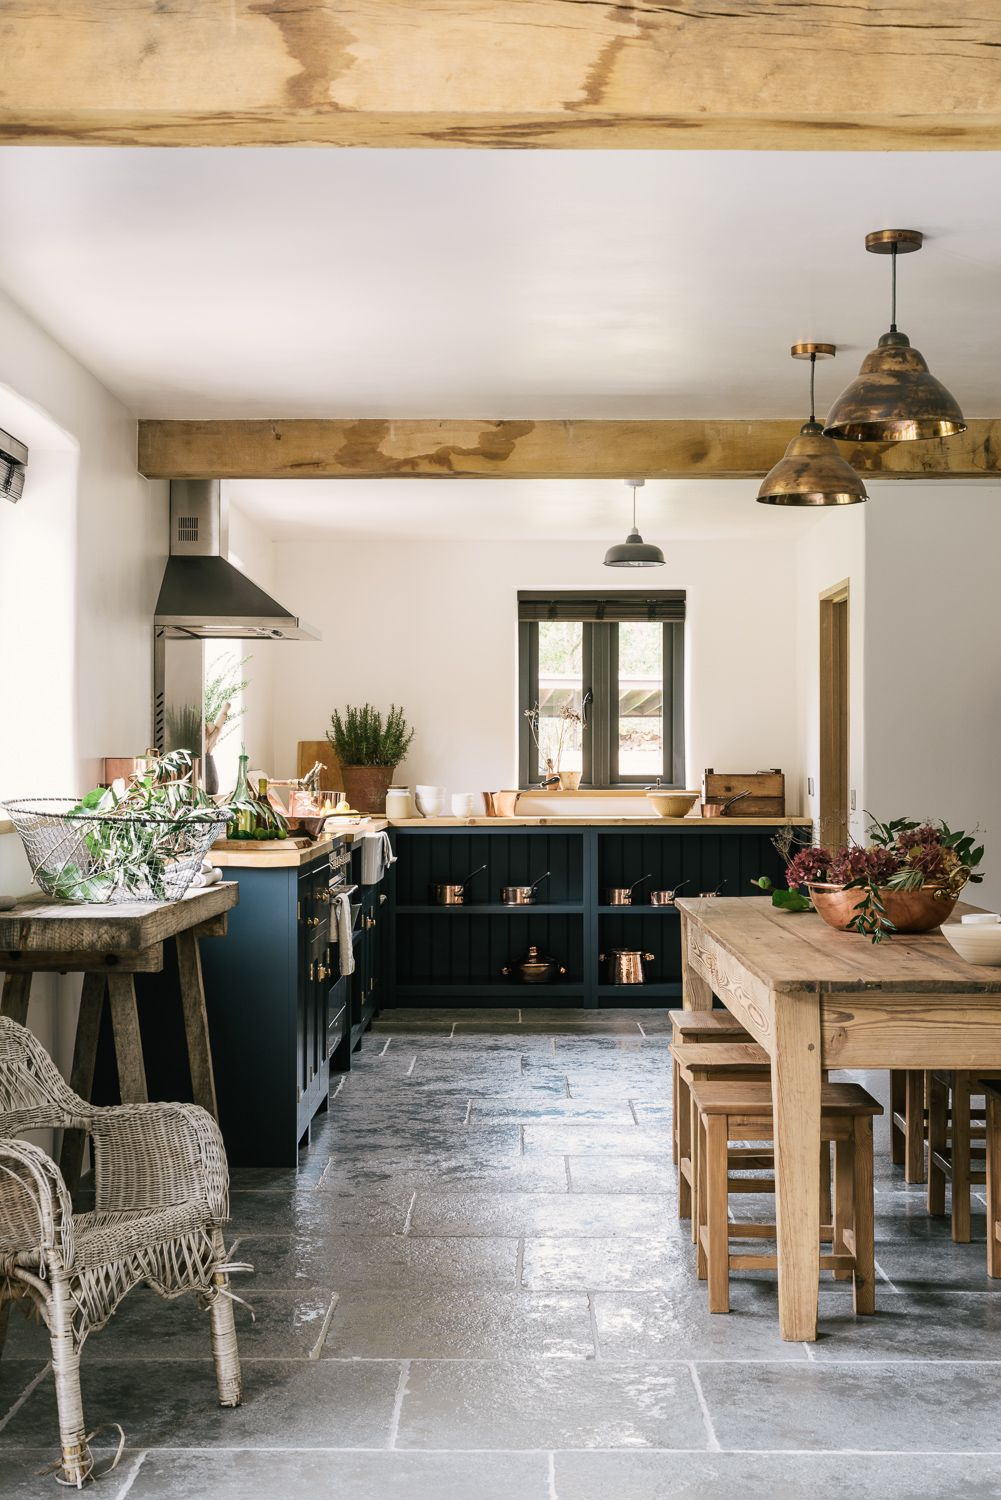 A stylish country kitchen by deVOL, with Worn Grey